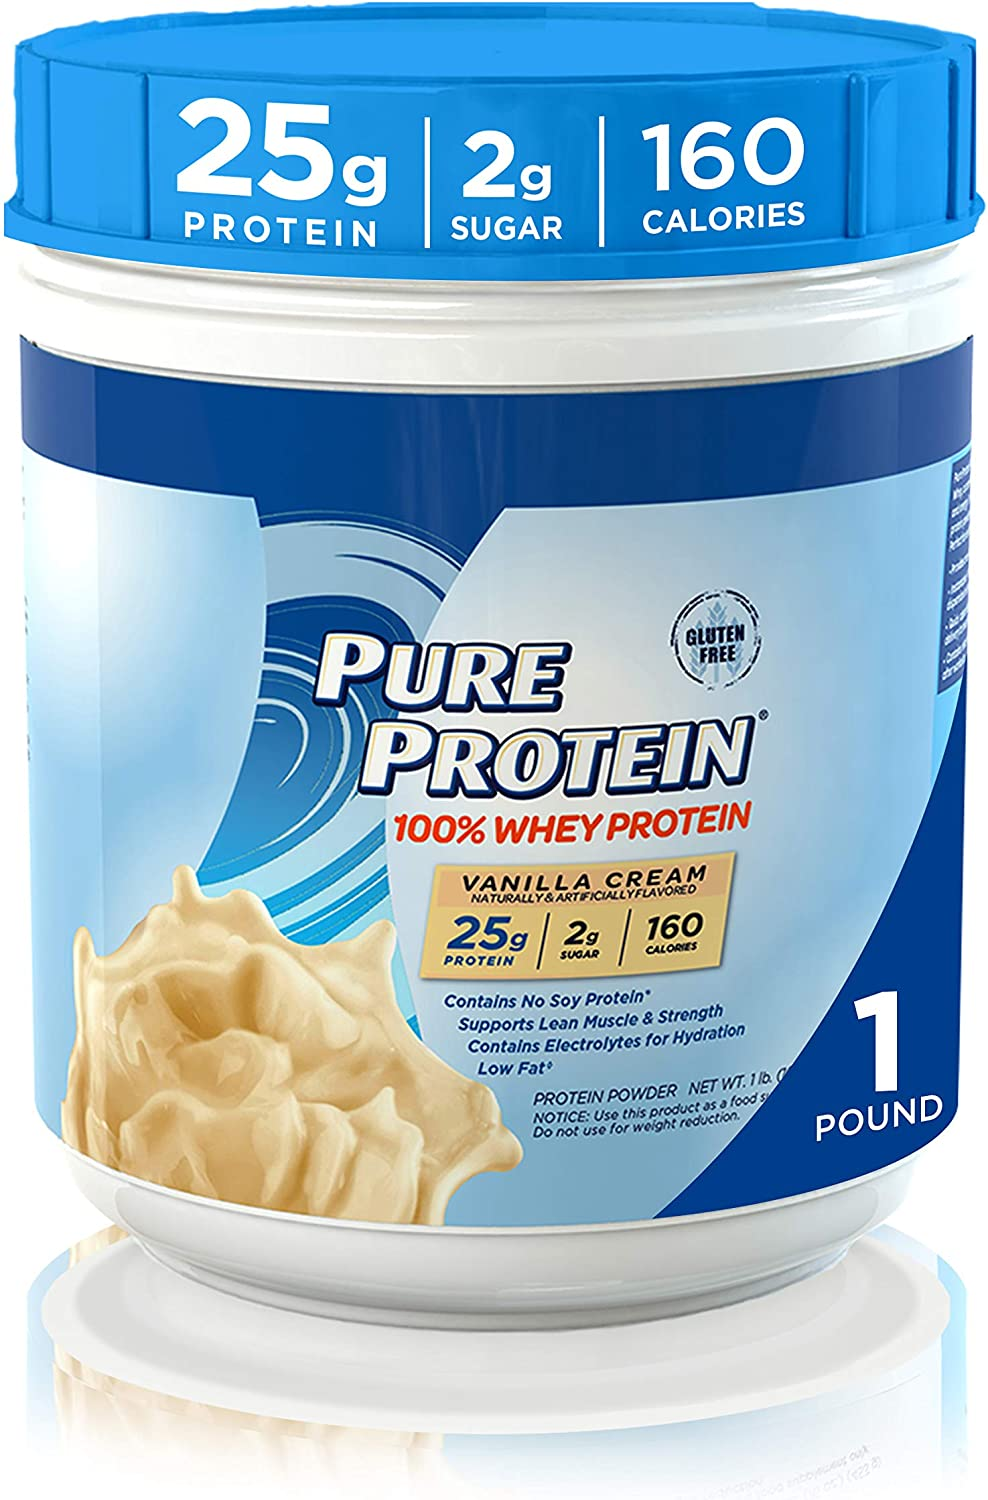 Whey Protein Powder by Pure Protein, Gluten Free, Vanilla Cream, 1lb